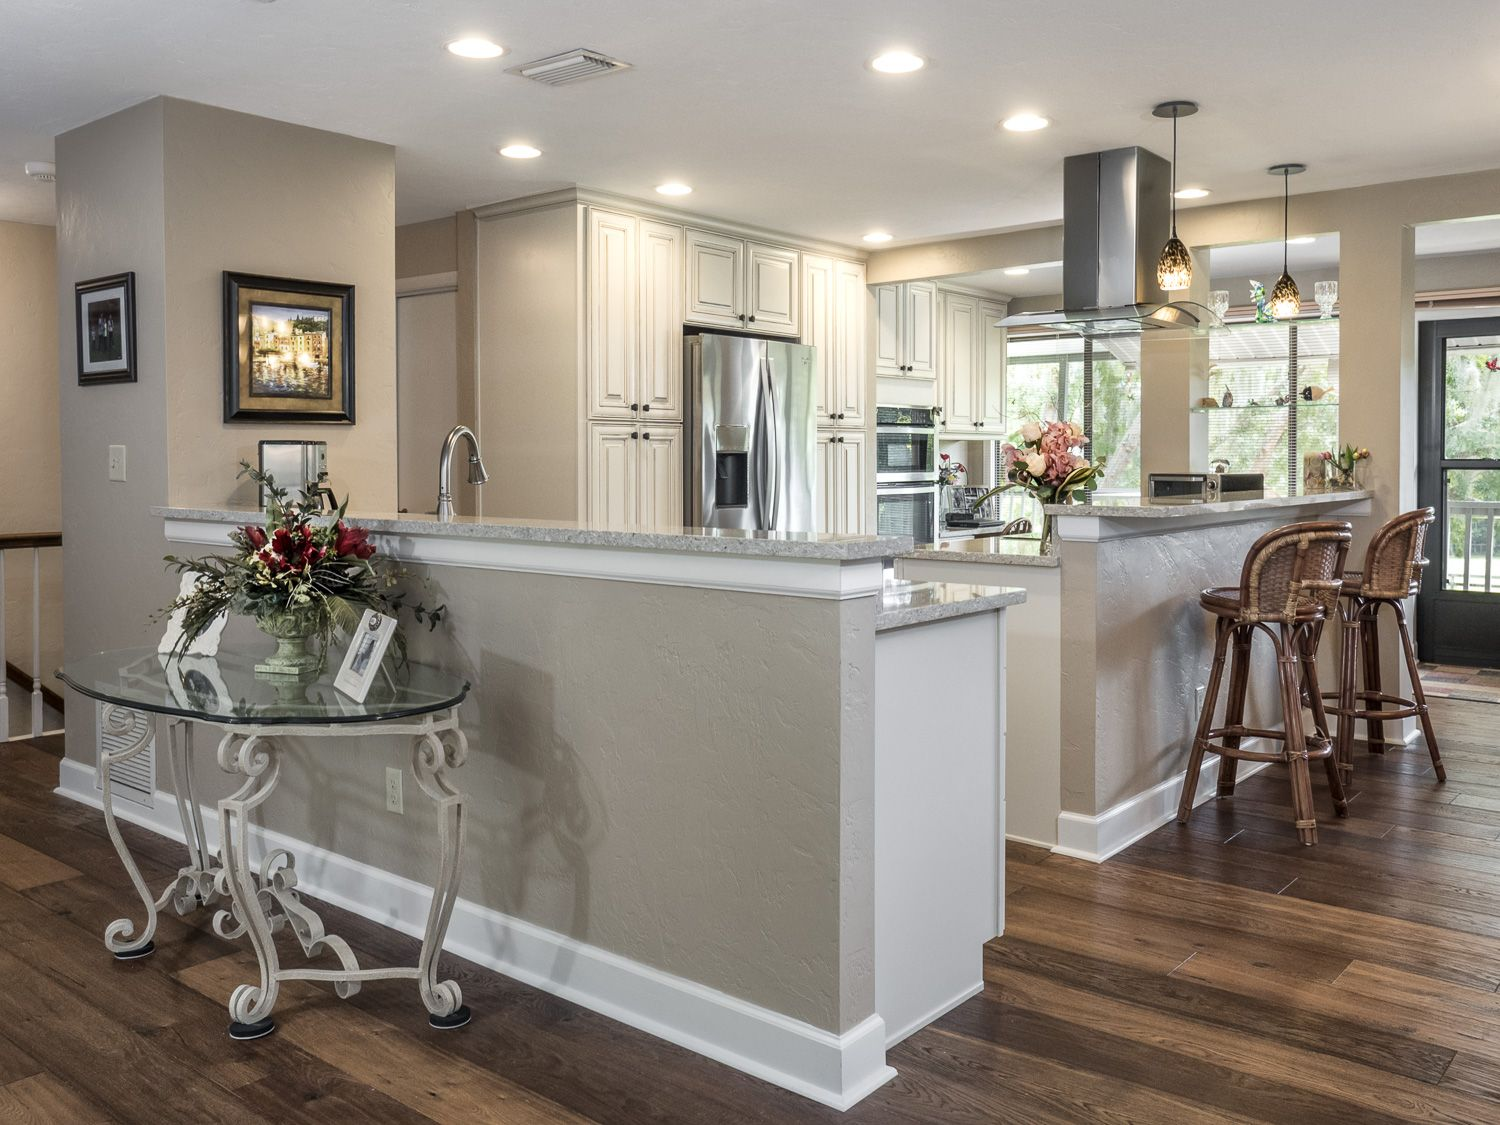 Kitchens With Brown Cabinets And Gray Walls